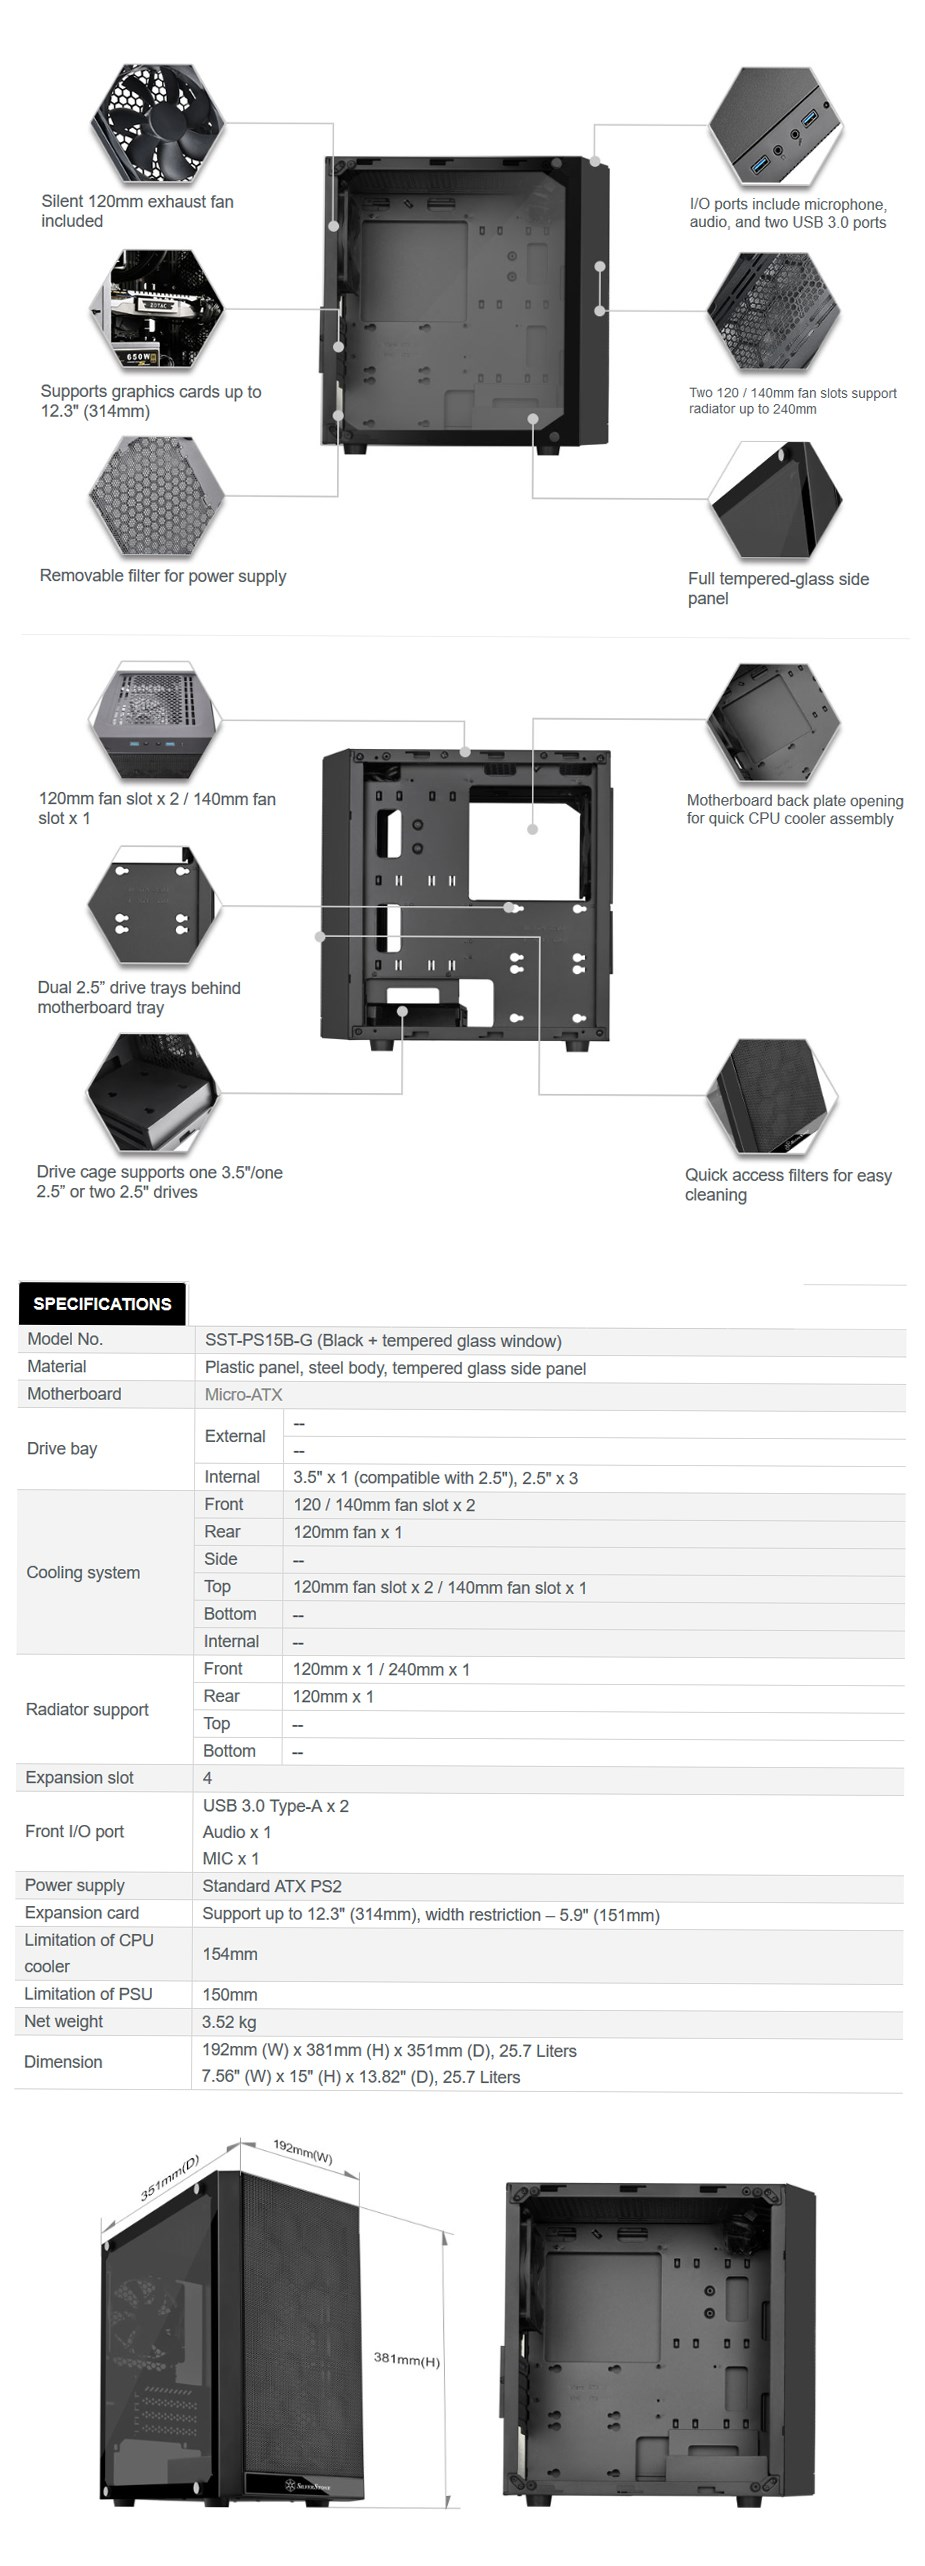 SilverStone Precision PS15 Tempered Glass Micro-ATX Case - Black - Desktop Overview 1